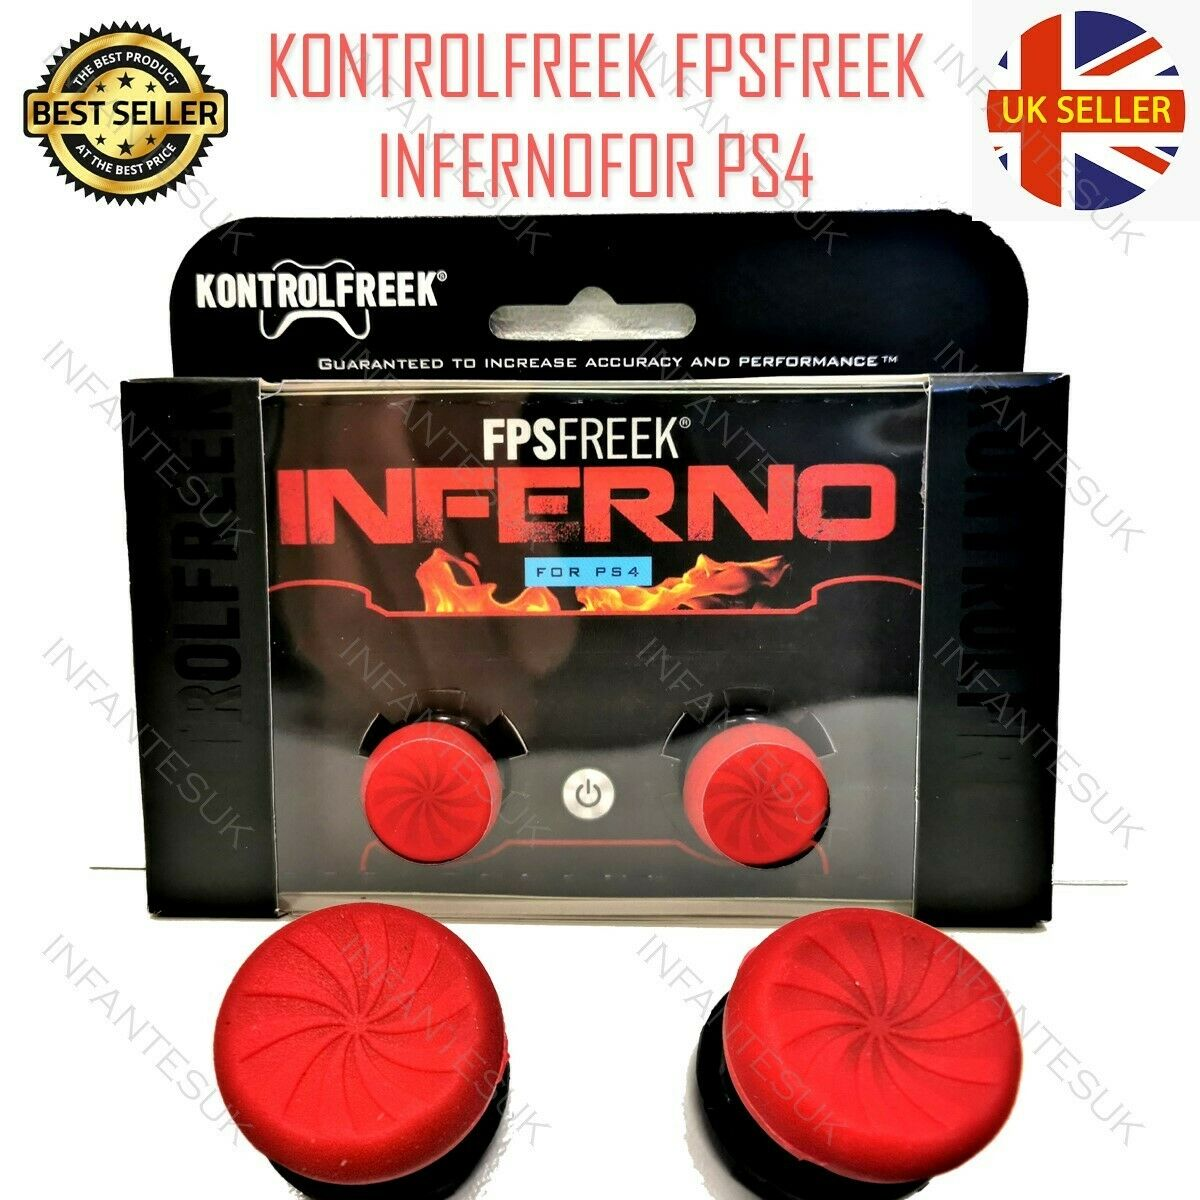 Kontrol Freek Inferno Thumbsticks Playstation 4 - Perfect For Warzone Apex